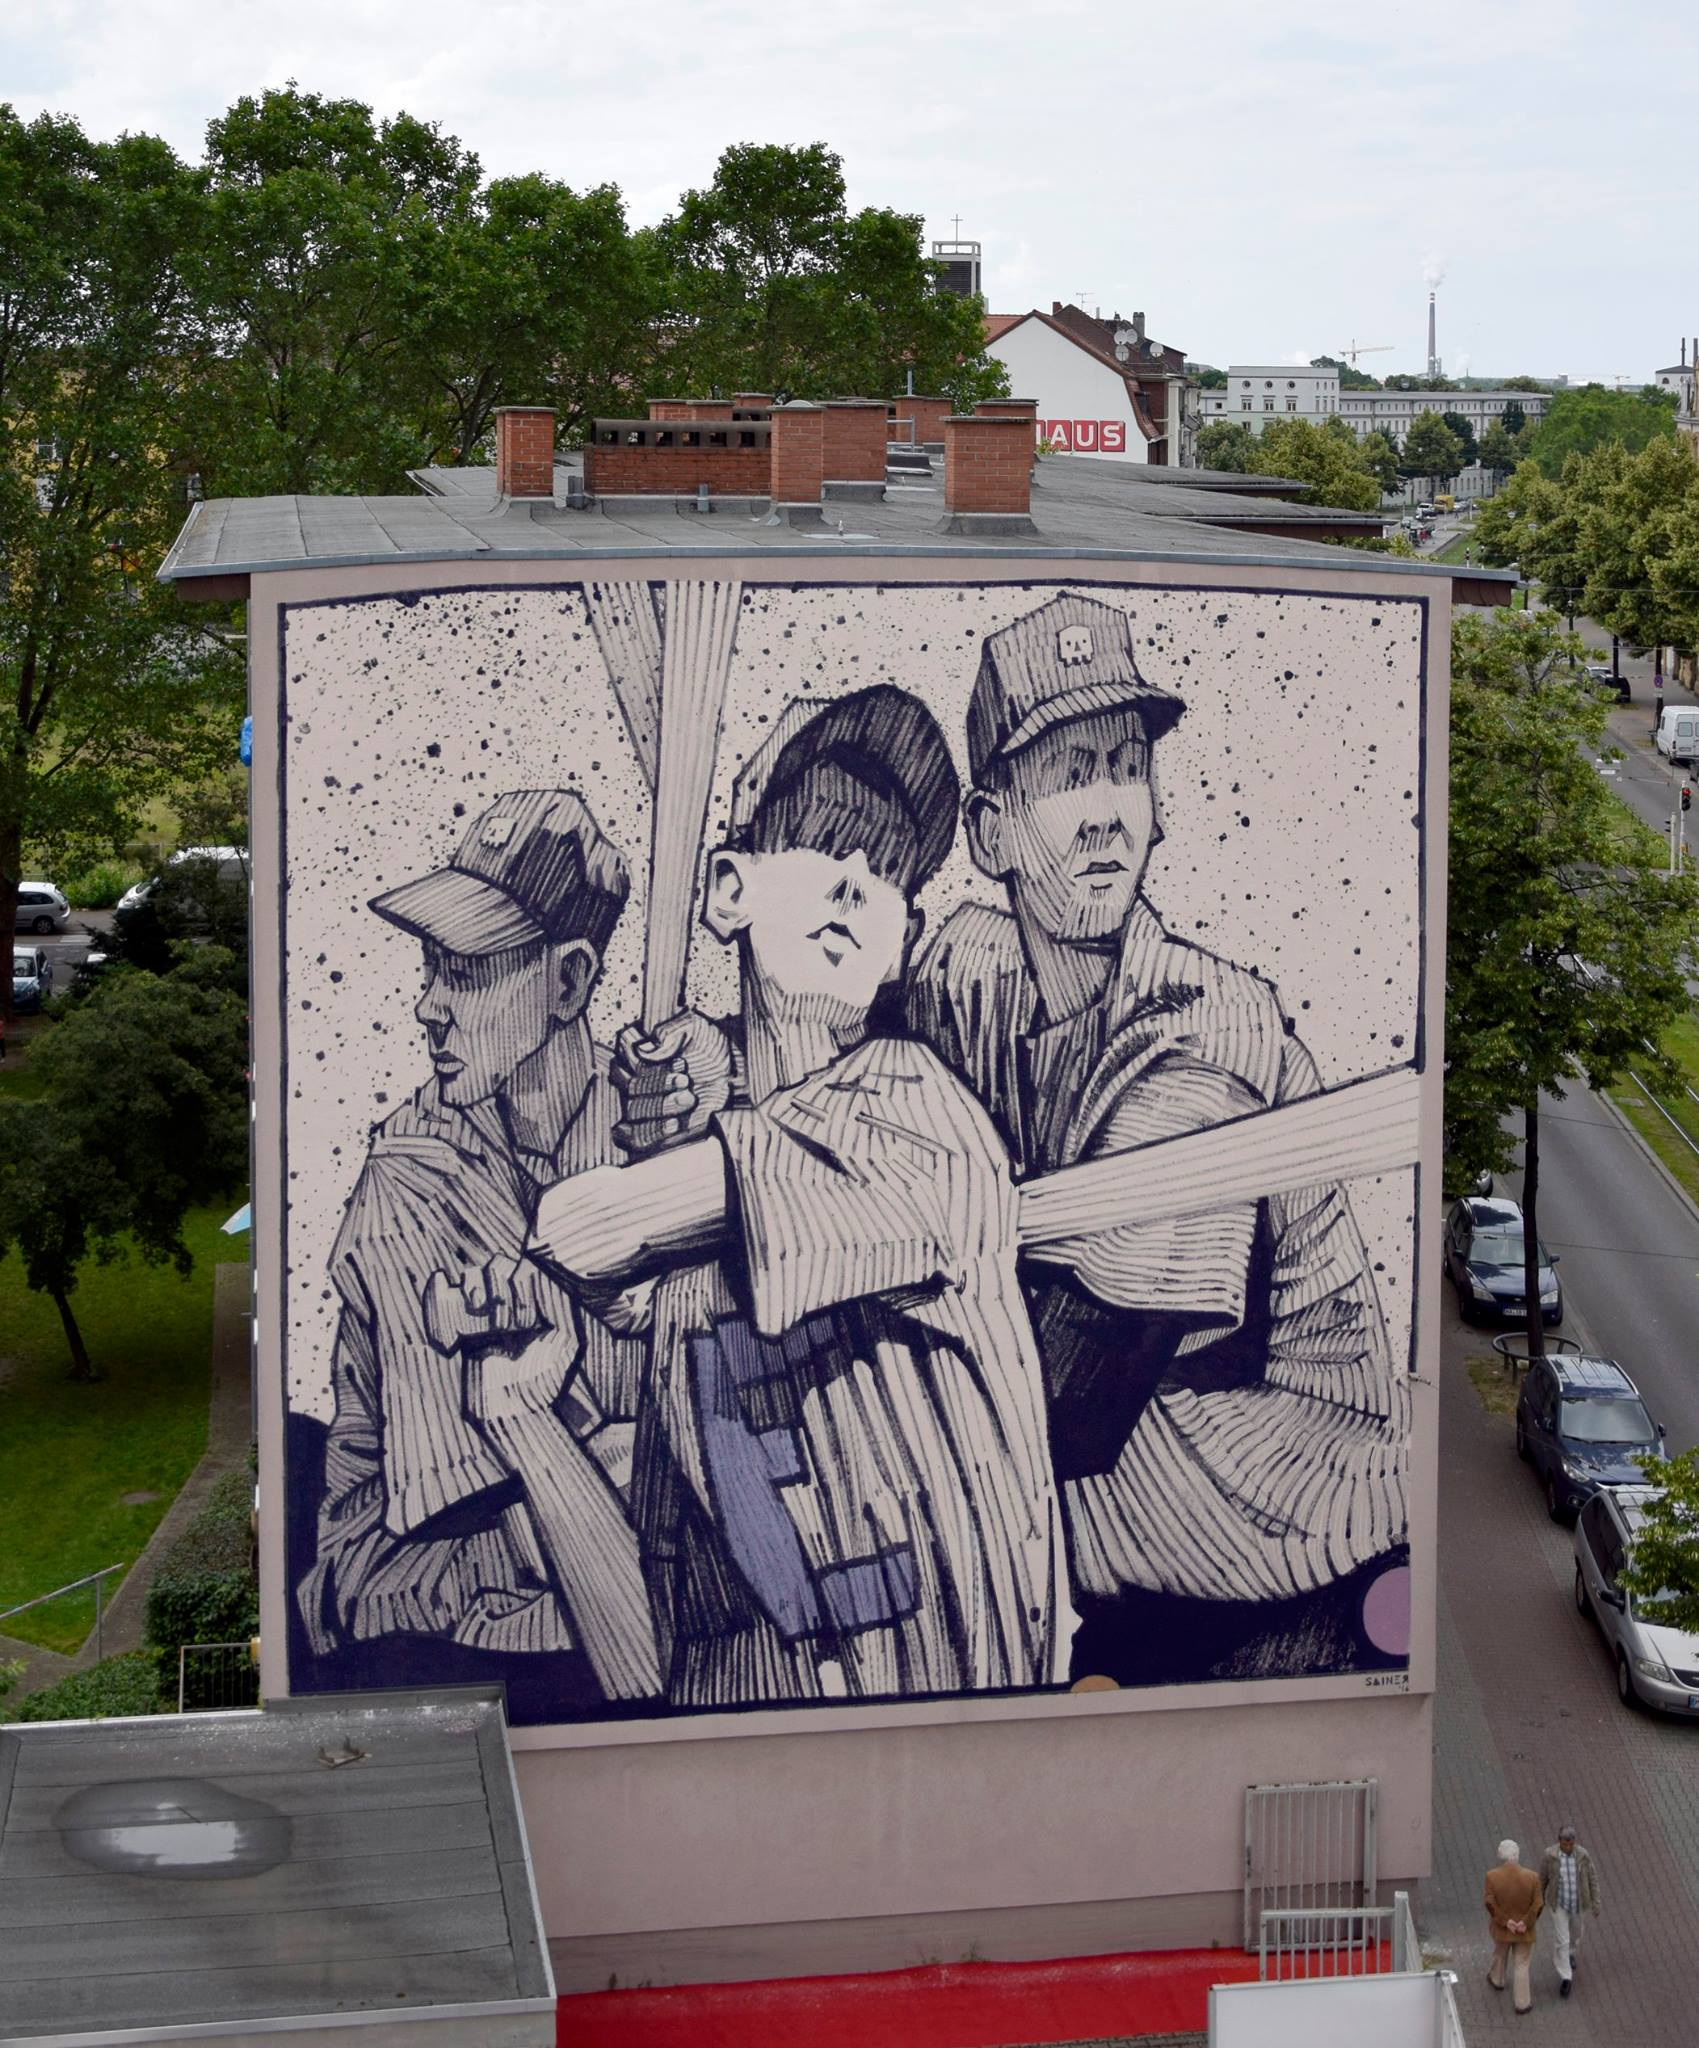 Sainer from Etam Cru in Mannheim, Germany.